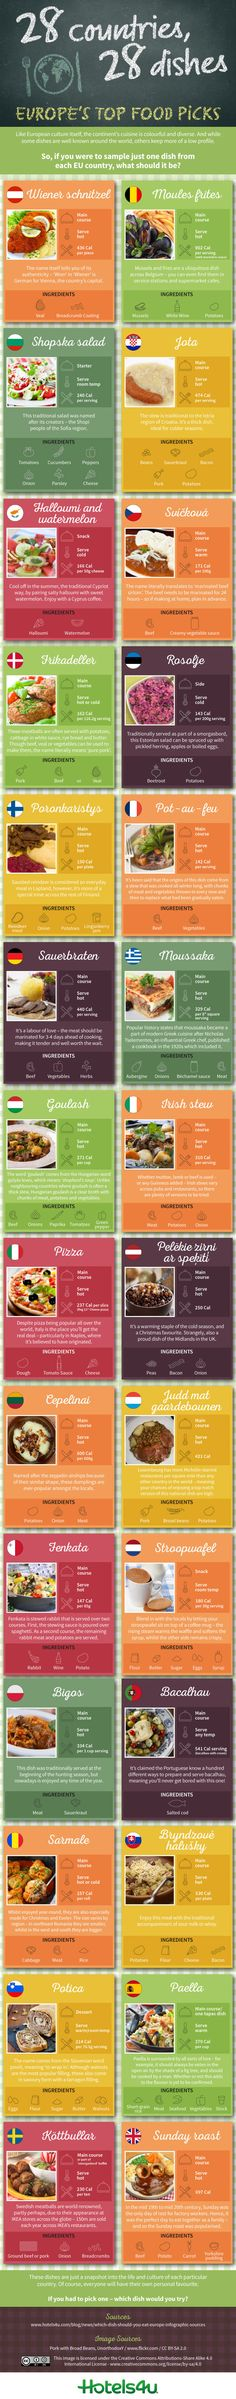 Infographic: 28 Top Dishes From 28 Countries In Europe - DesignTAXI.com